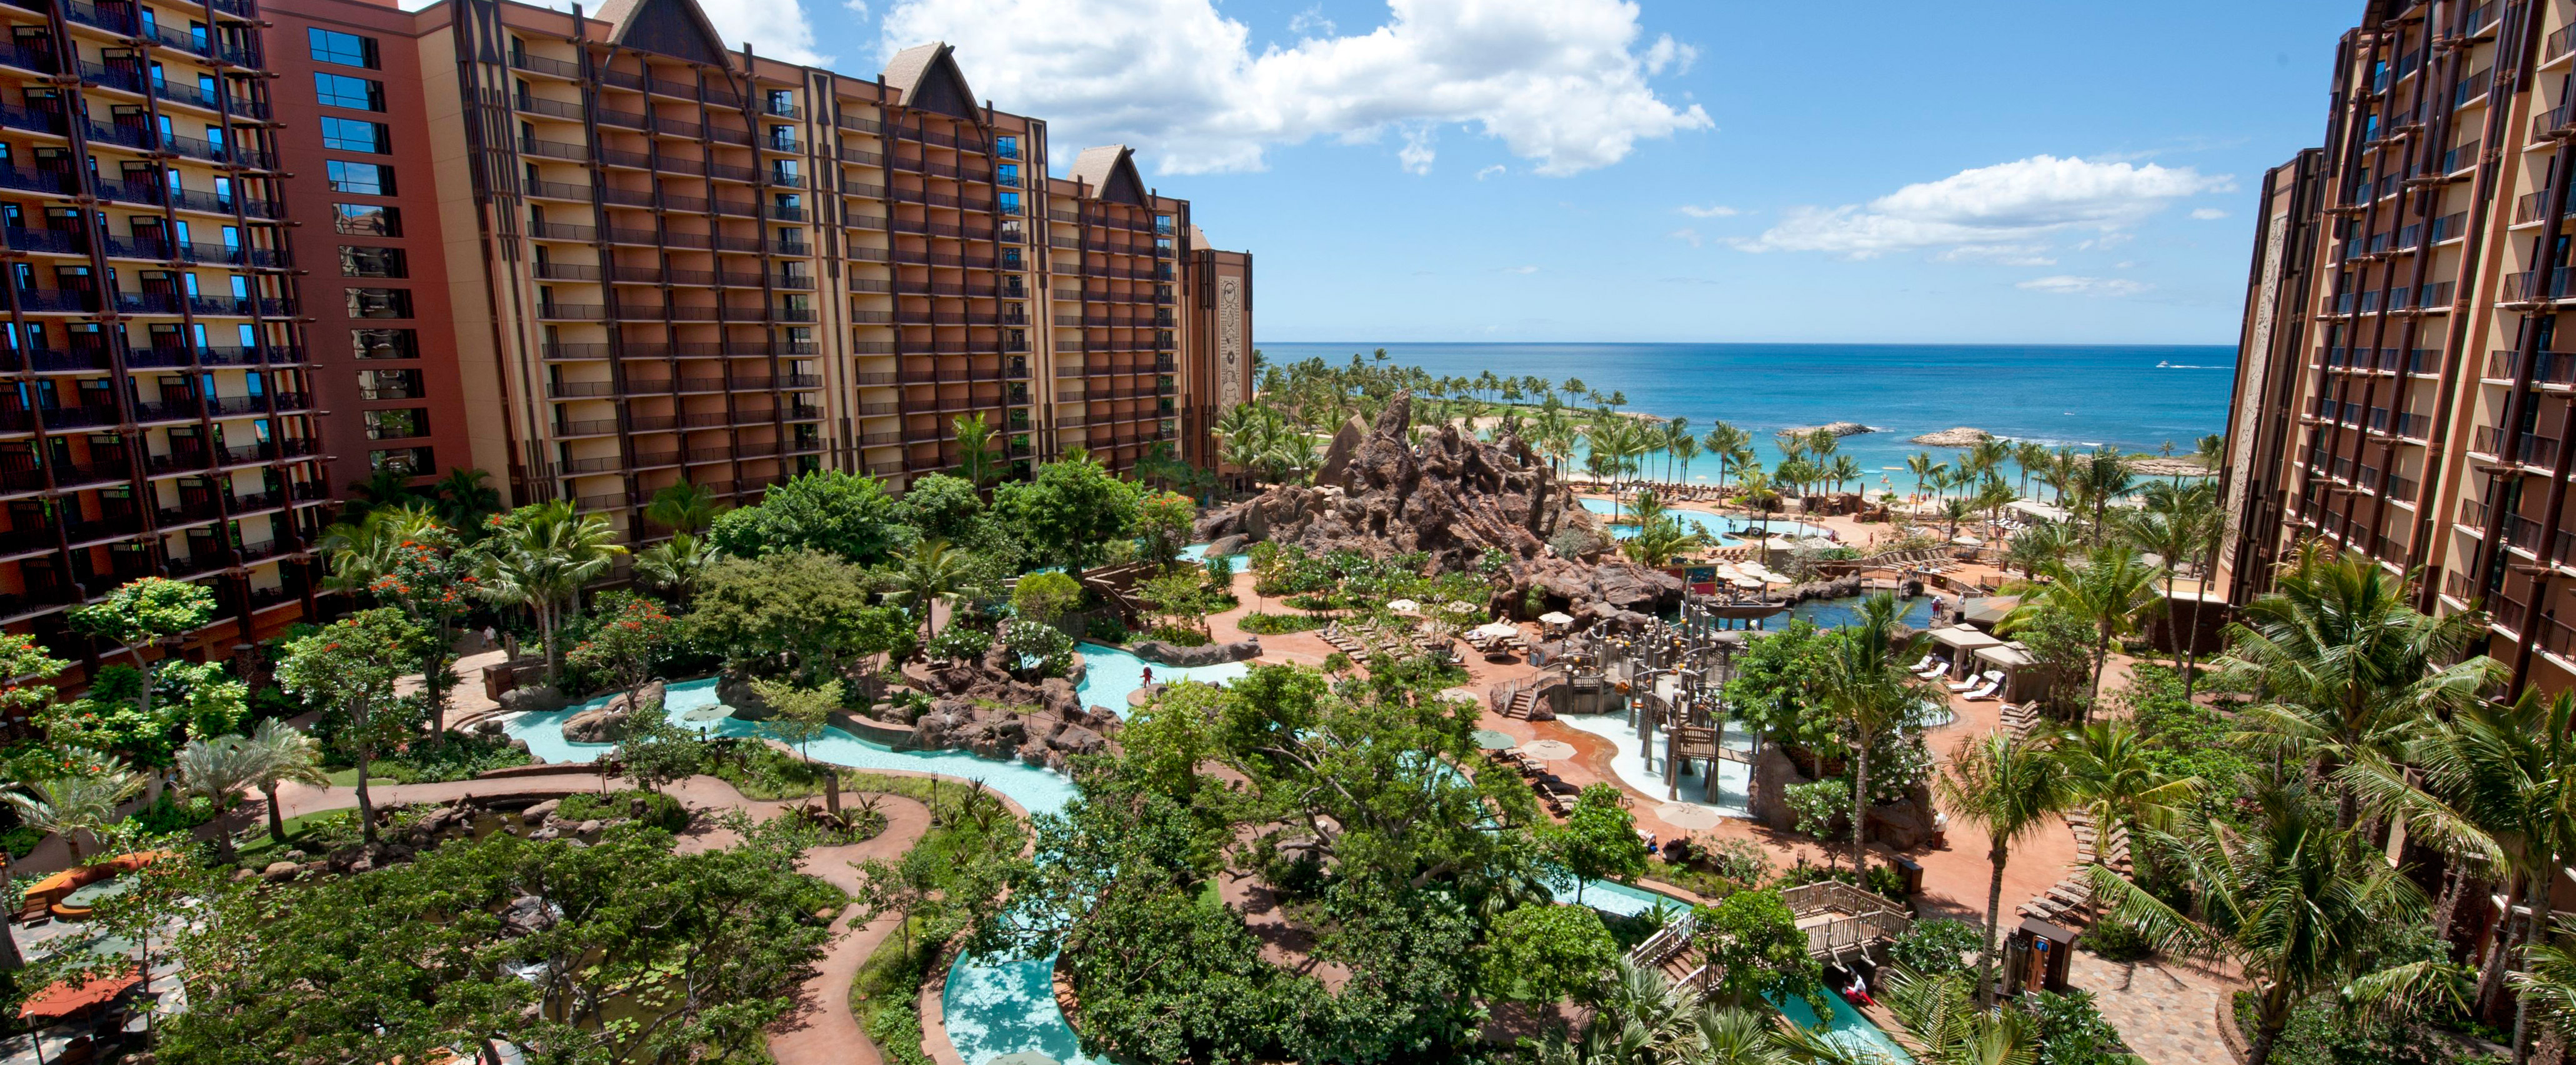 the aulani resort story | aulani hawaii resort & spa